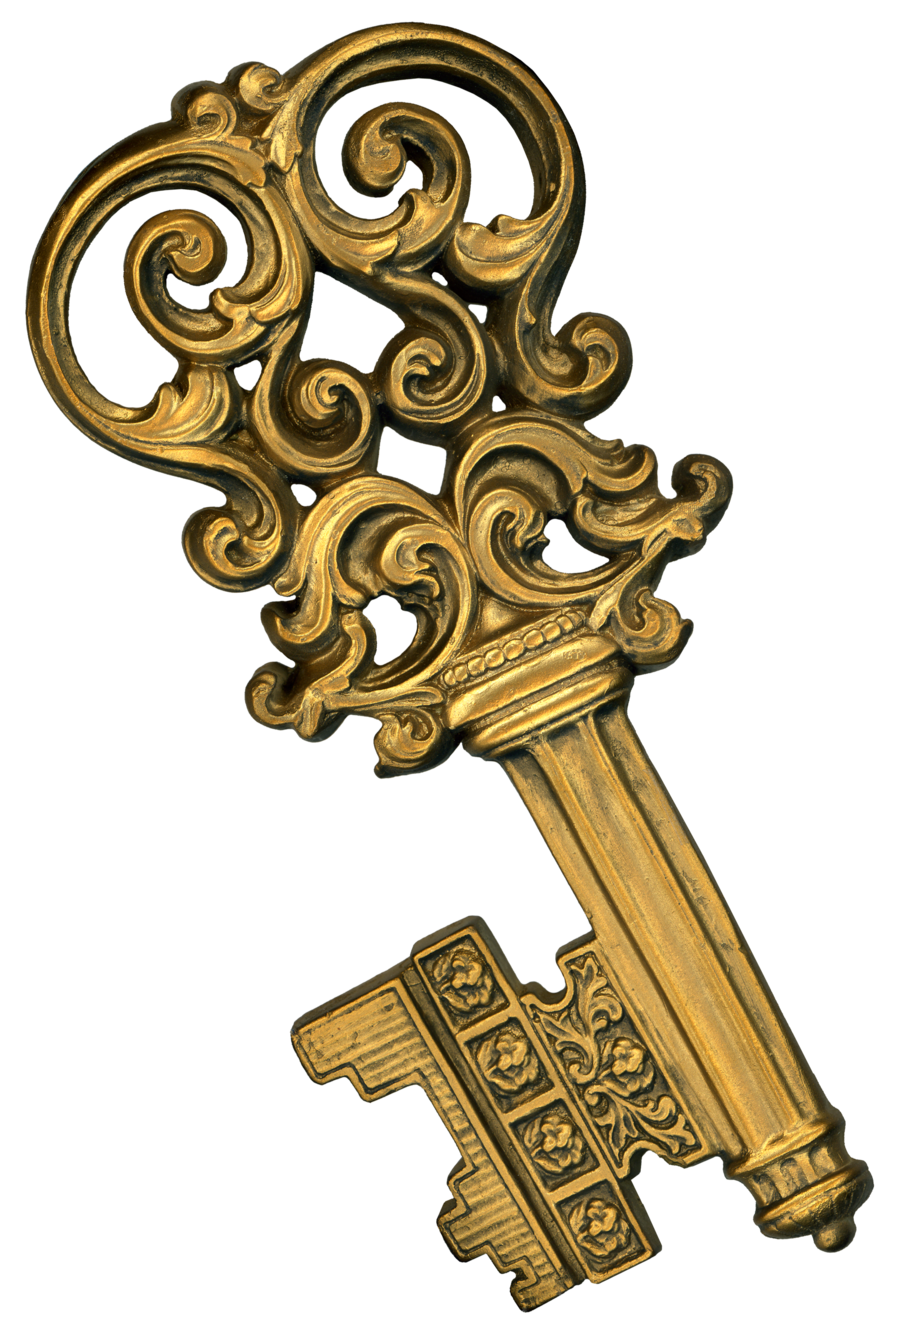 Keys transparent steampunk. Retro fancy gold plaster